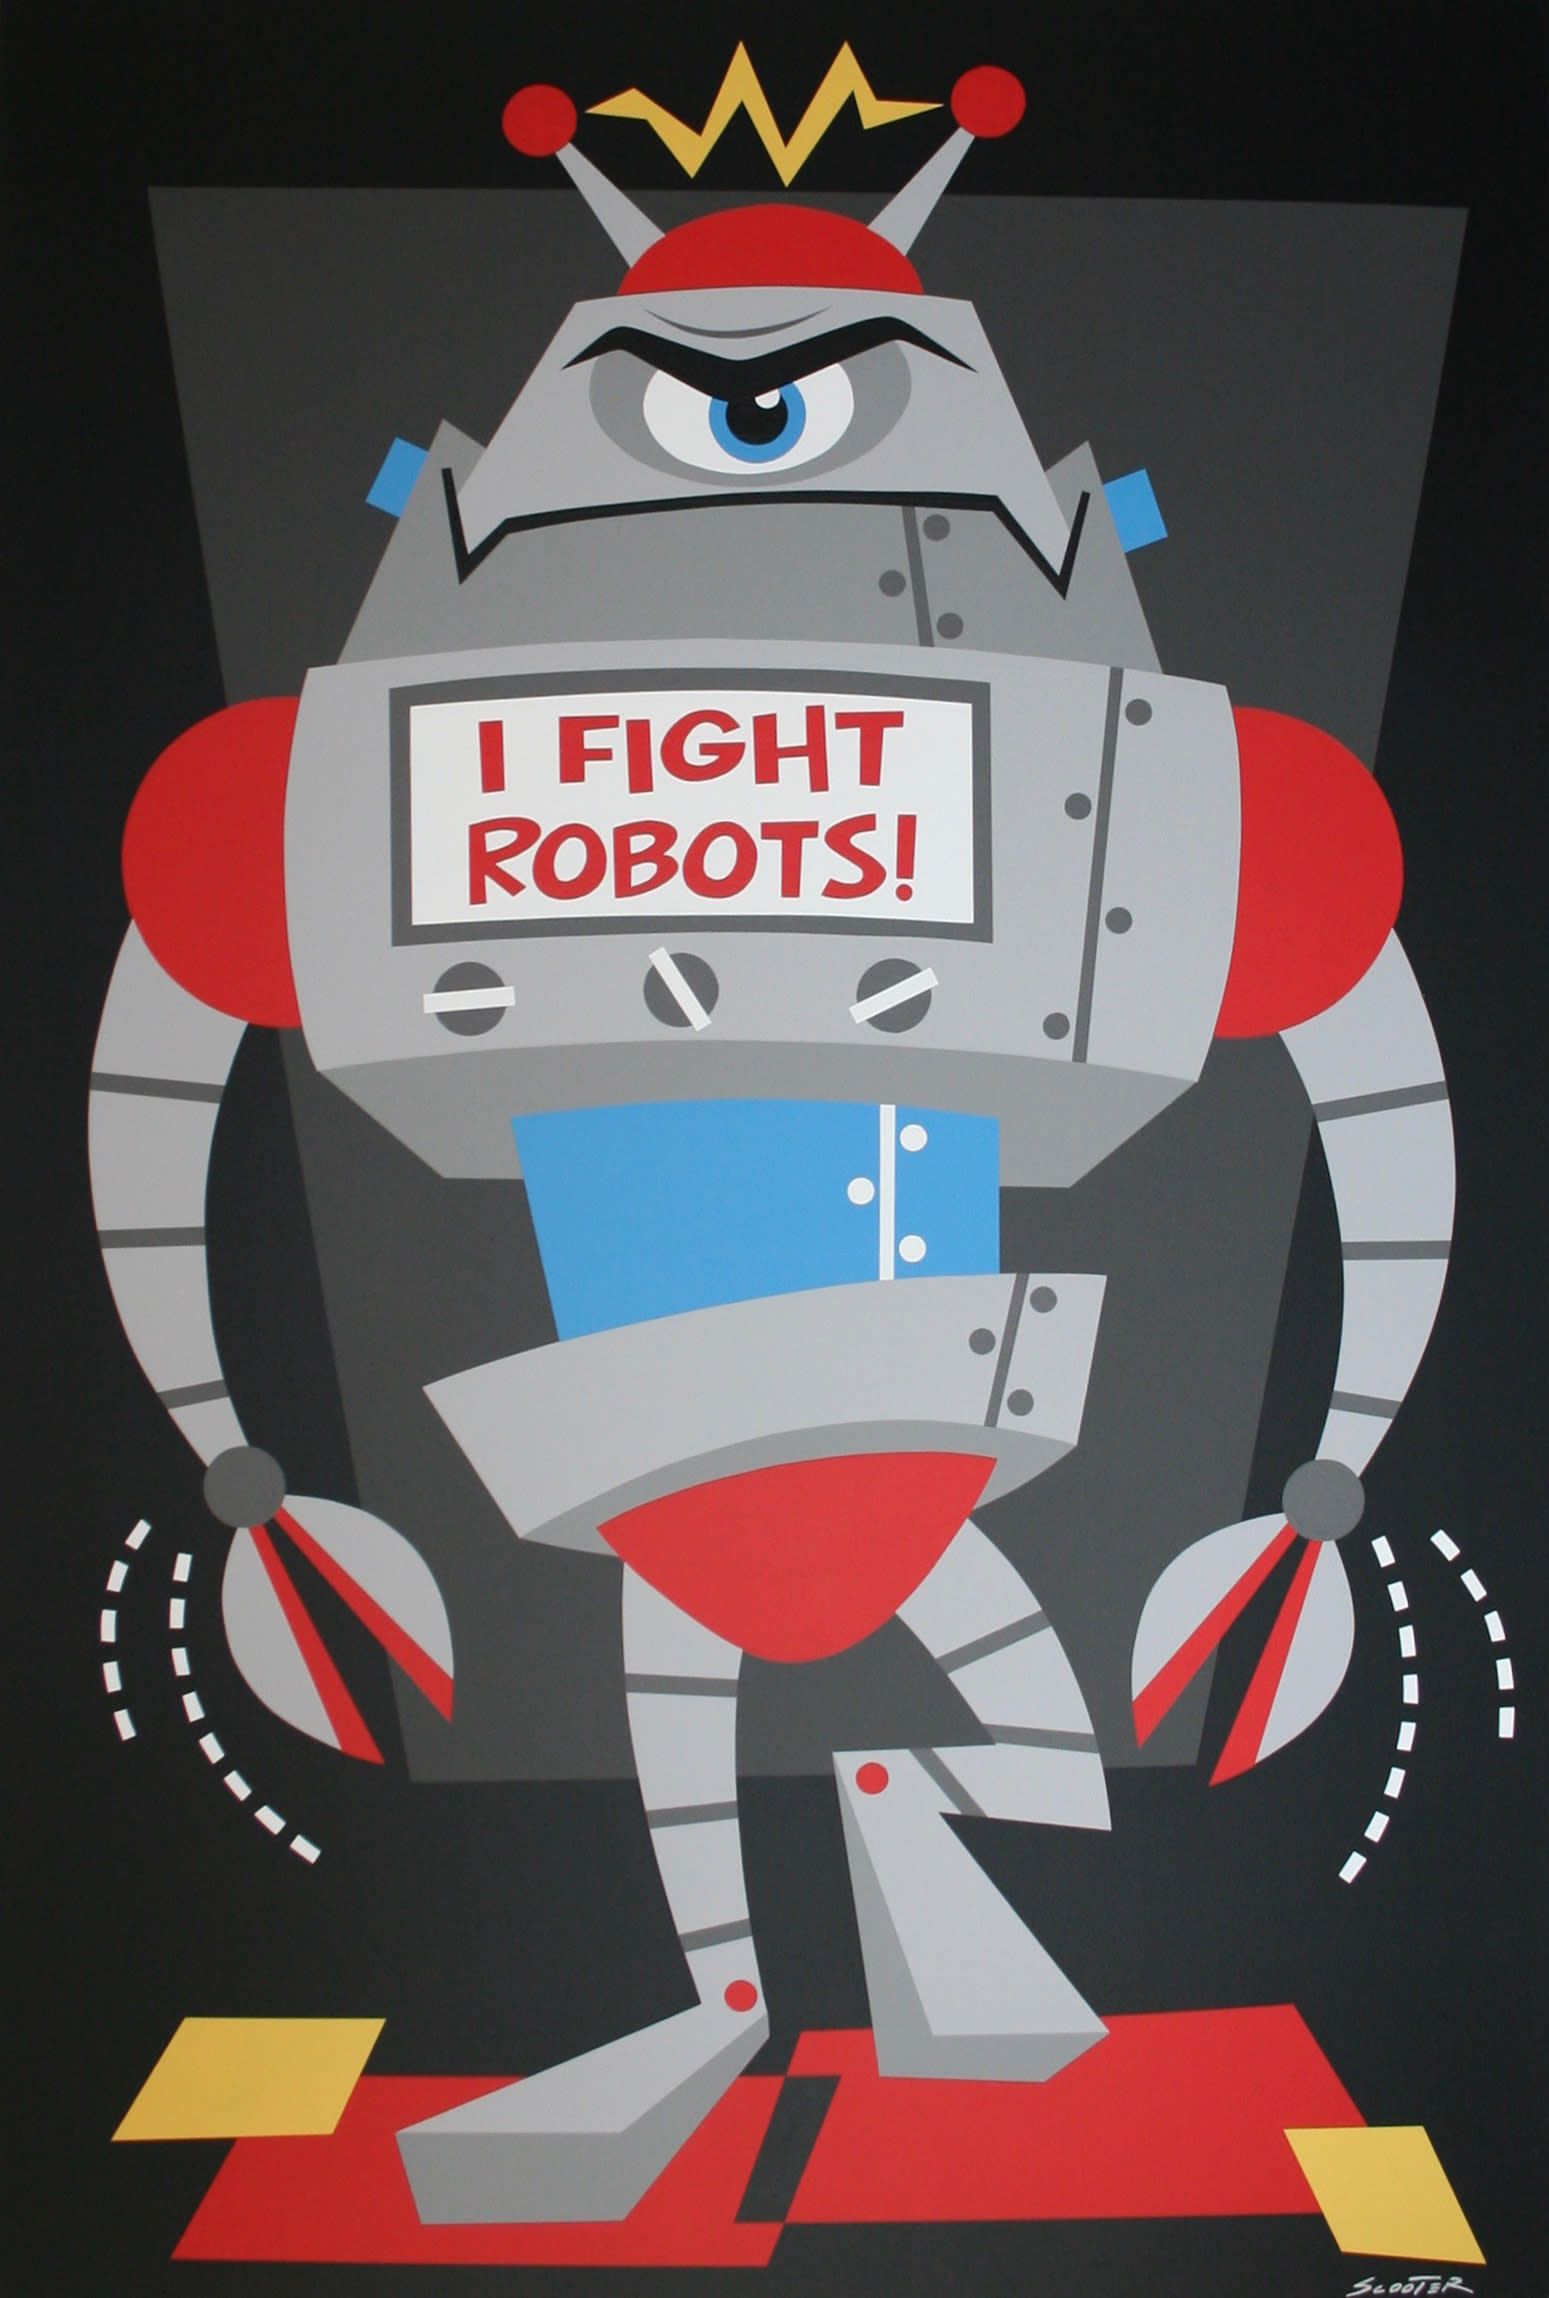 I fight robots 3 jpeg jsvzmx